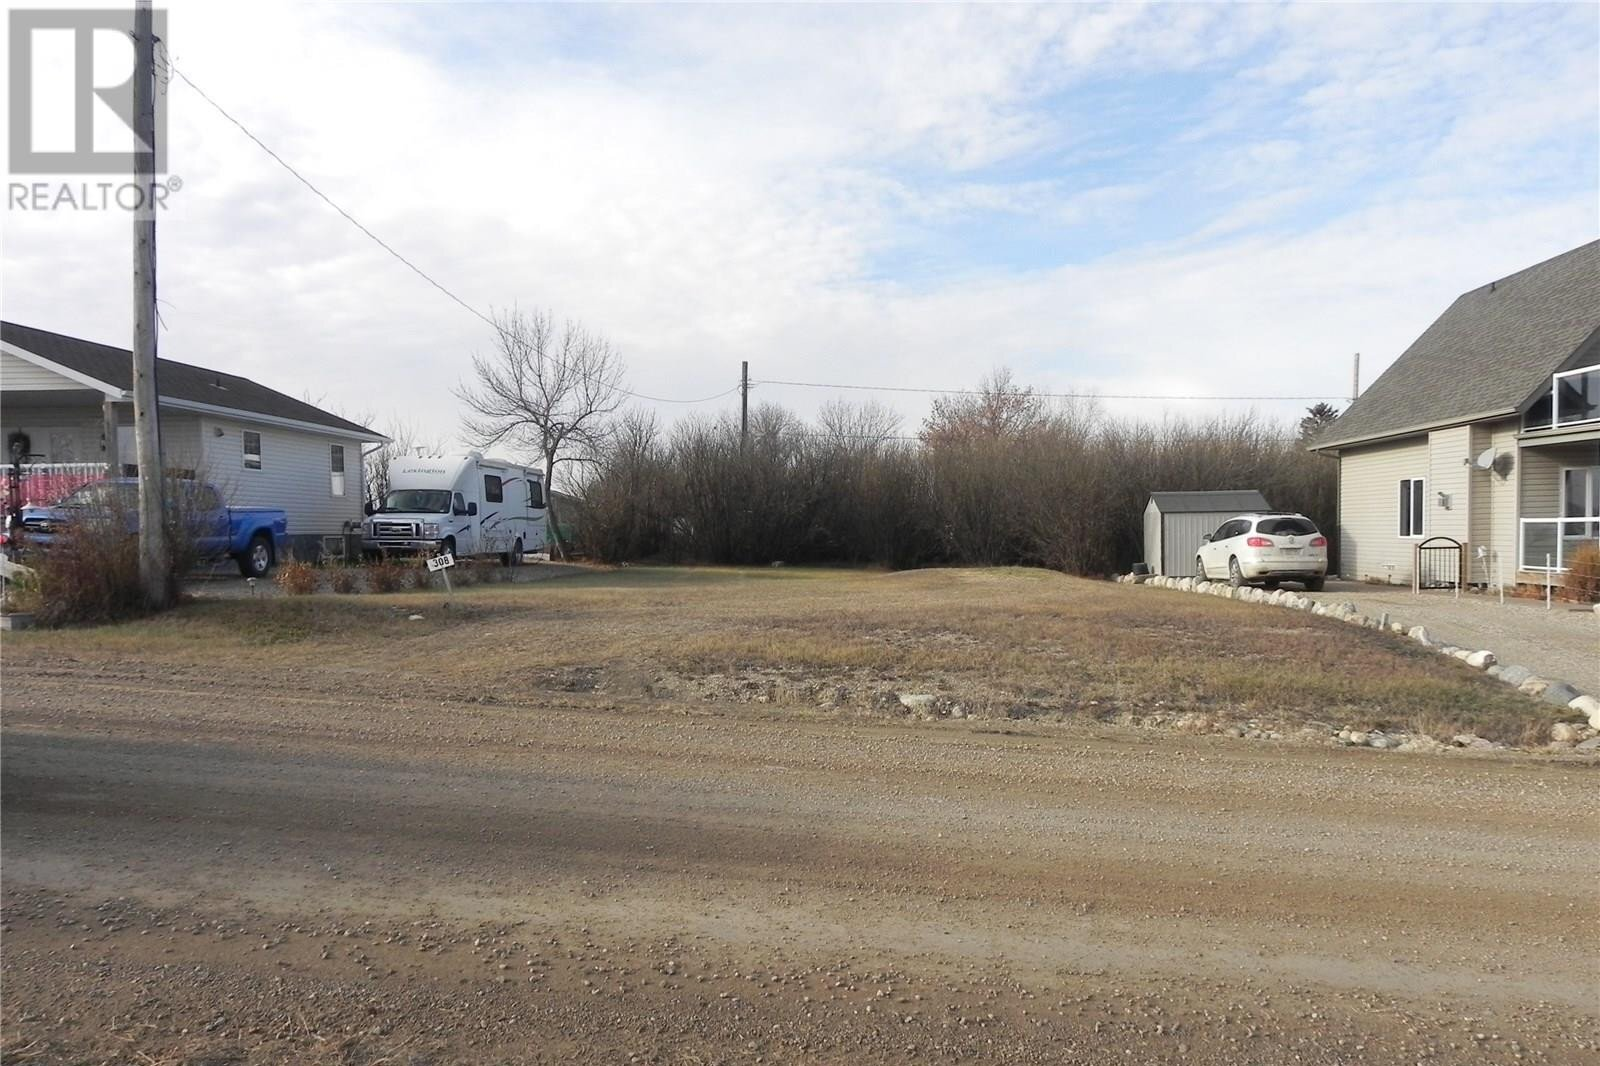 Residential property for sale at 308 William St Manitou Beach Saskatchewan - MLS: SK833407